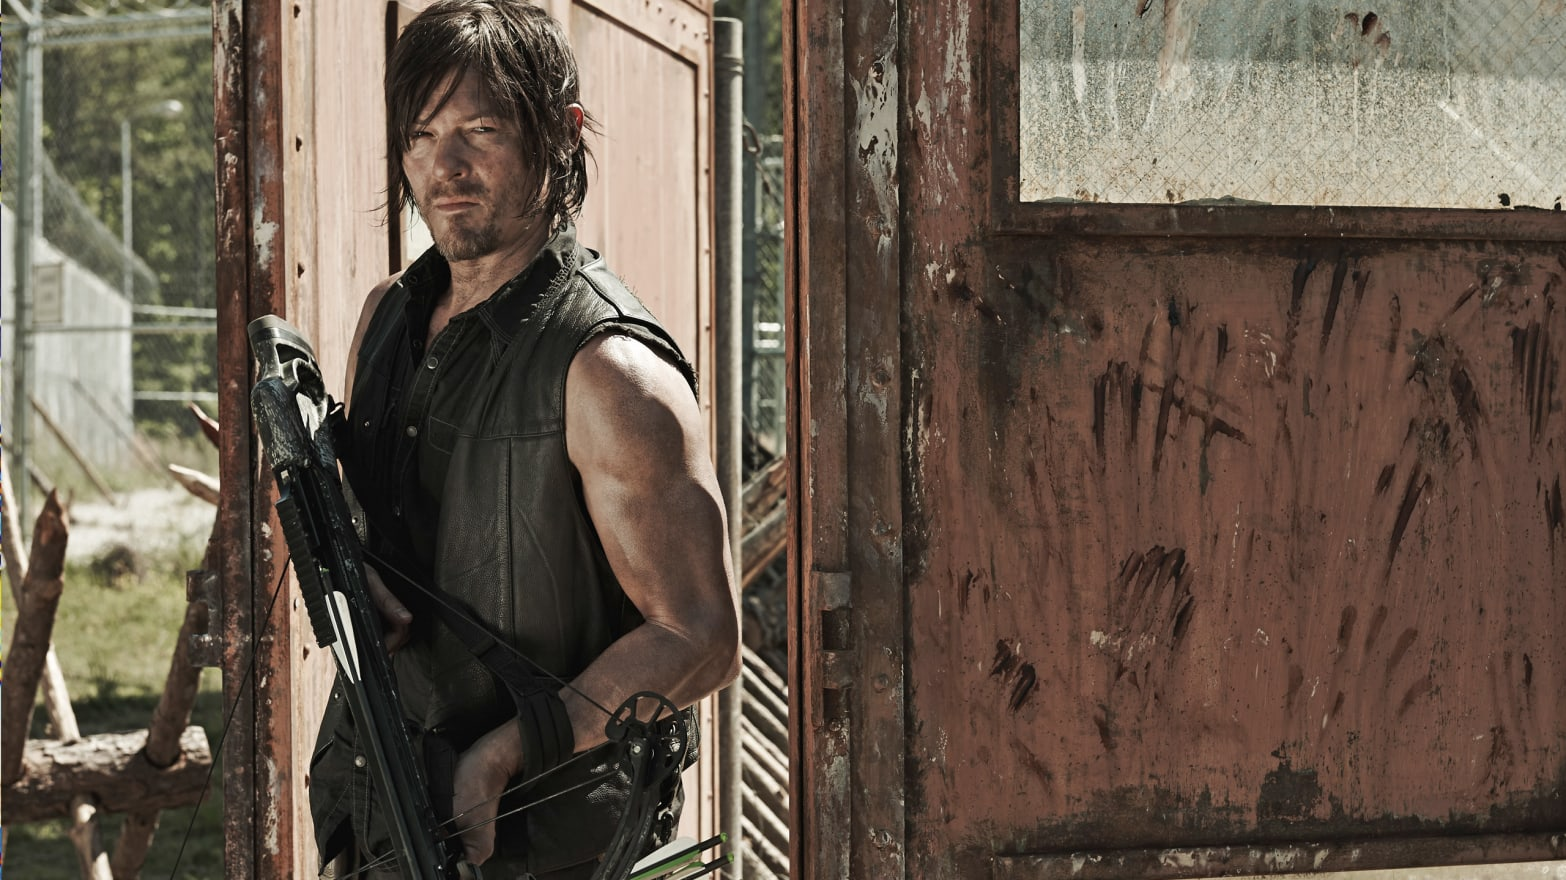 The Walking Dead's Norman Reedus Says Michonne's Cute, Wouldn't Mind